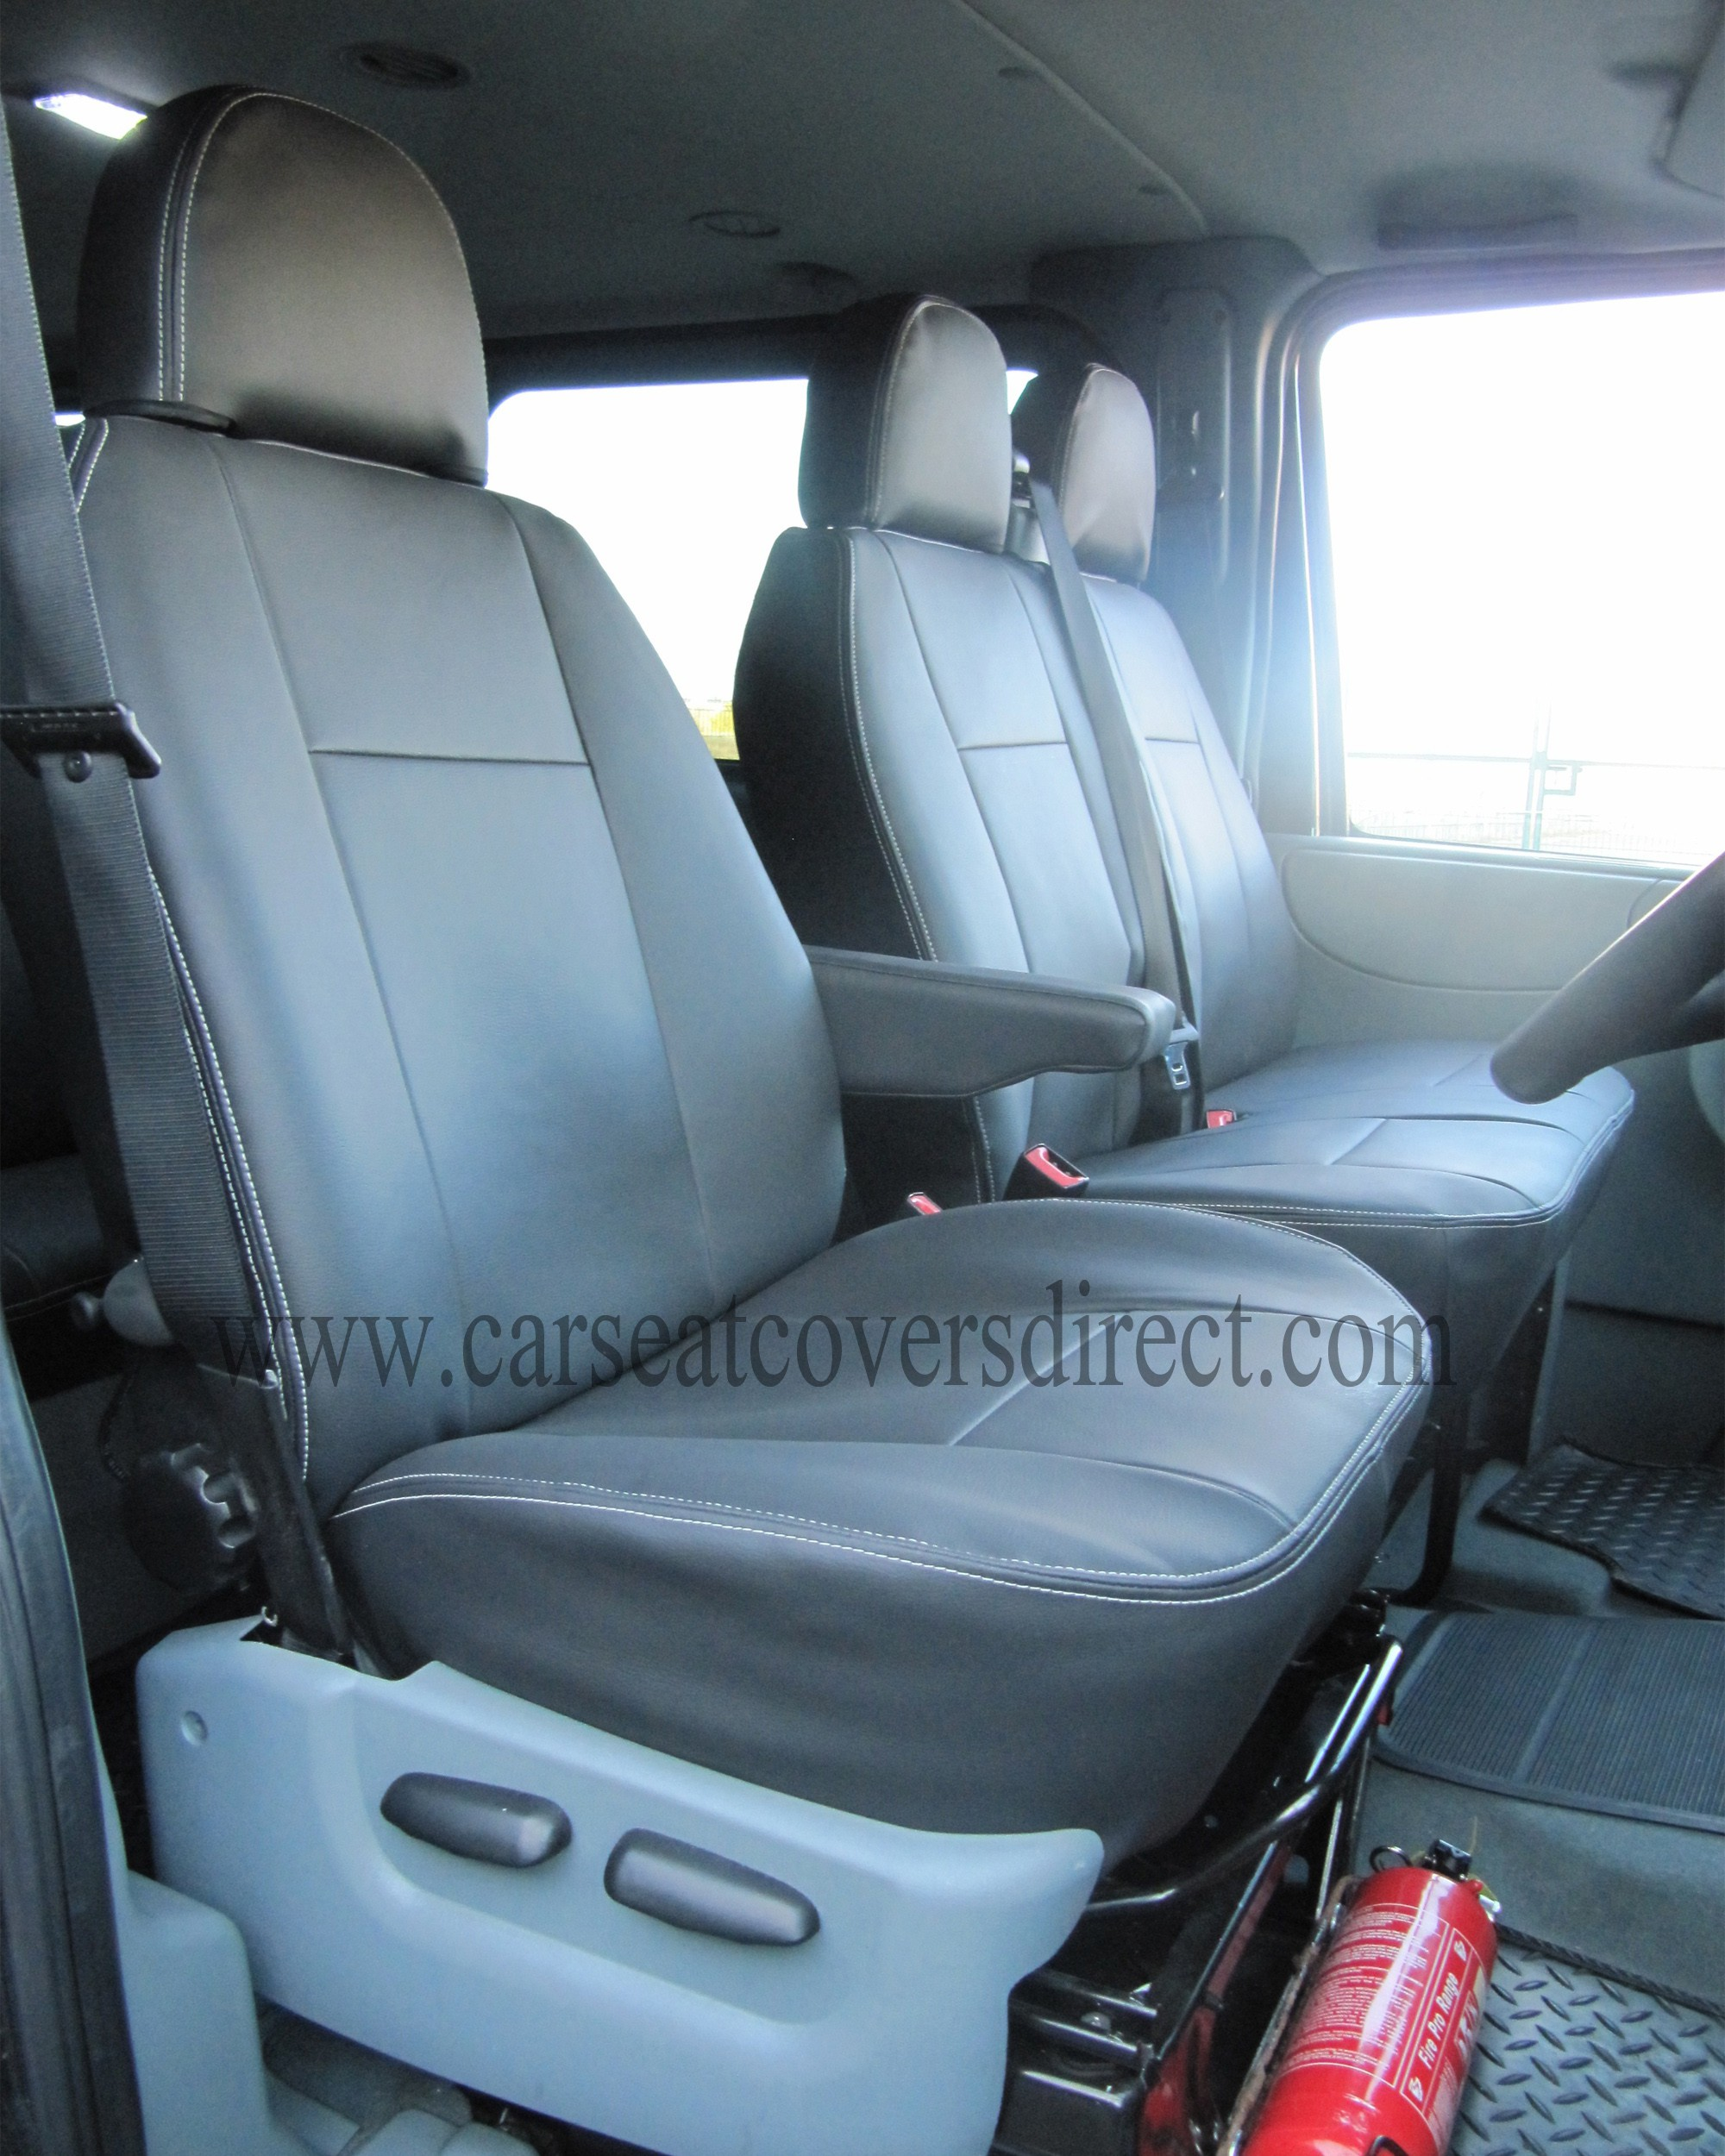 FORD TOURNEO Van seat covers